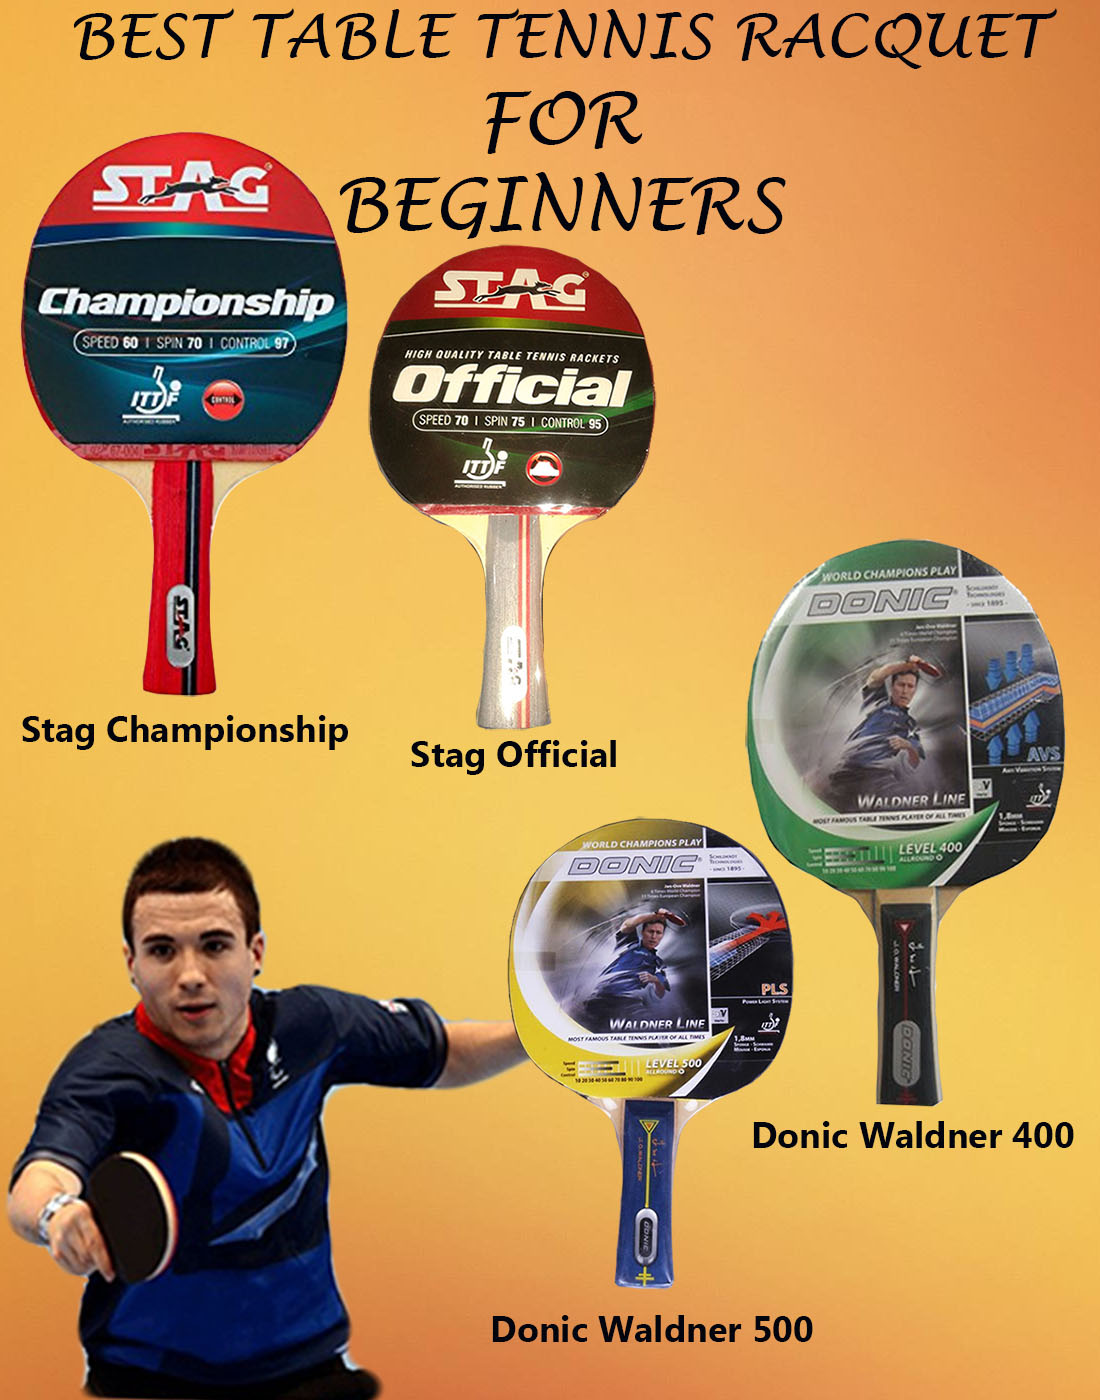 BEST TABLE TENNIS RACQUET FOR BEGINNERS IMAGES